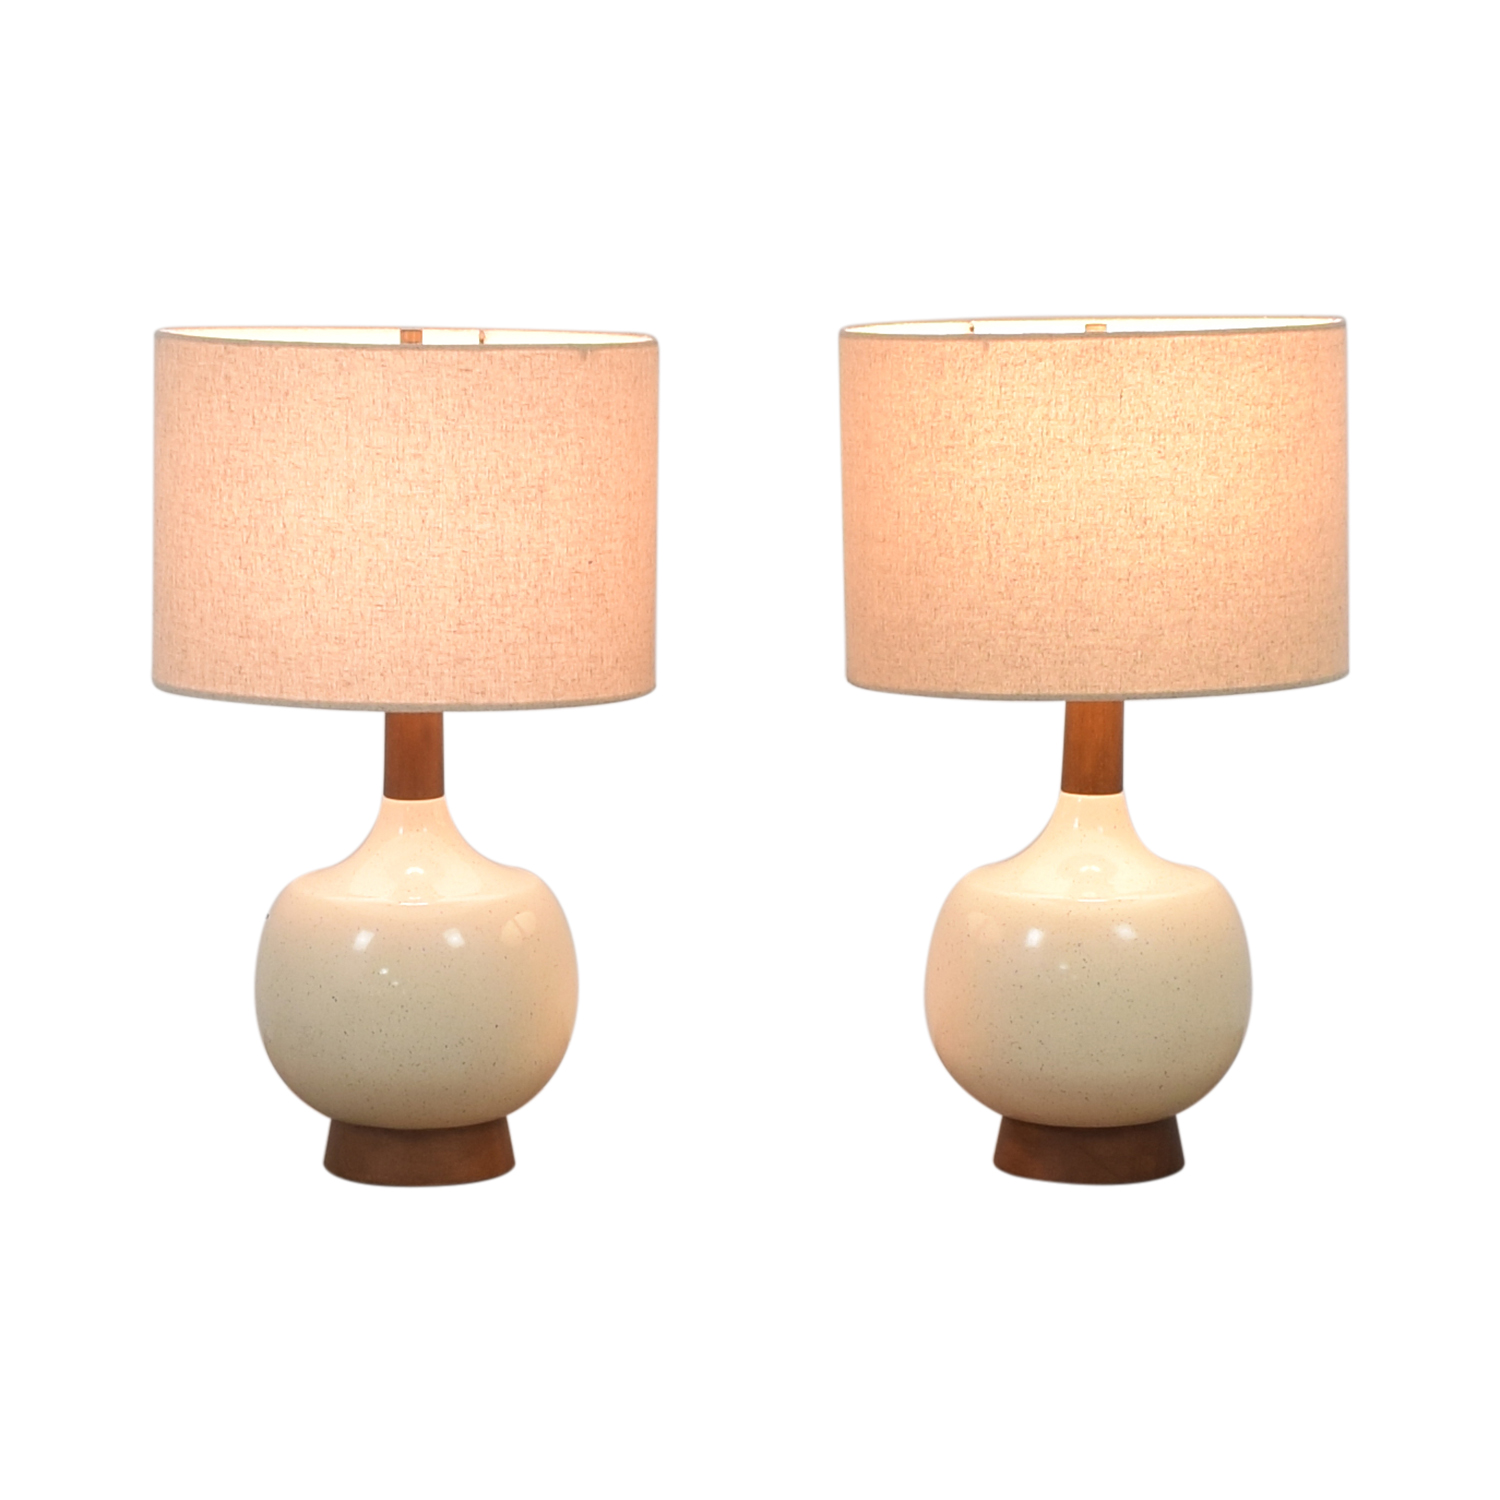 West Elm West Elm Modernist Table Lamps